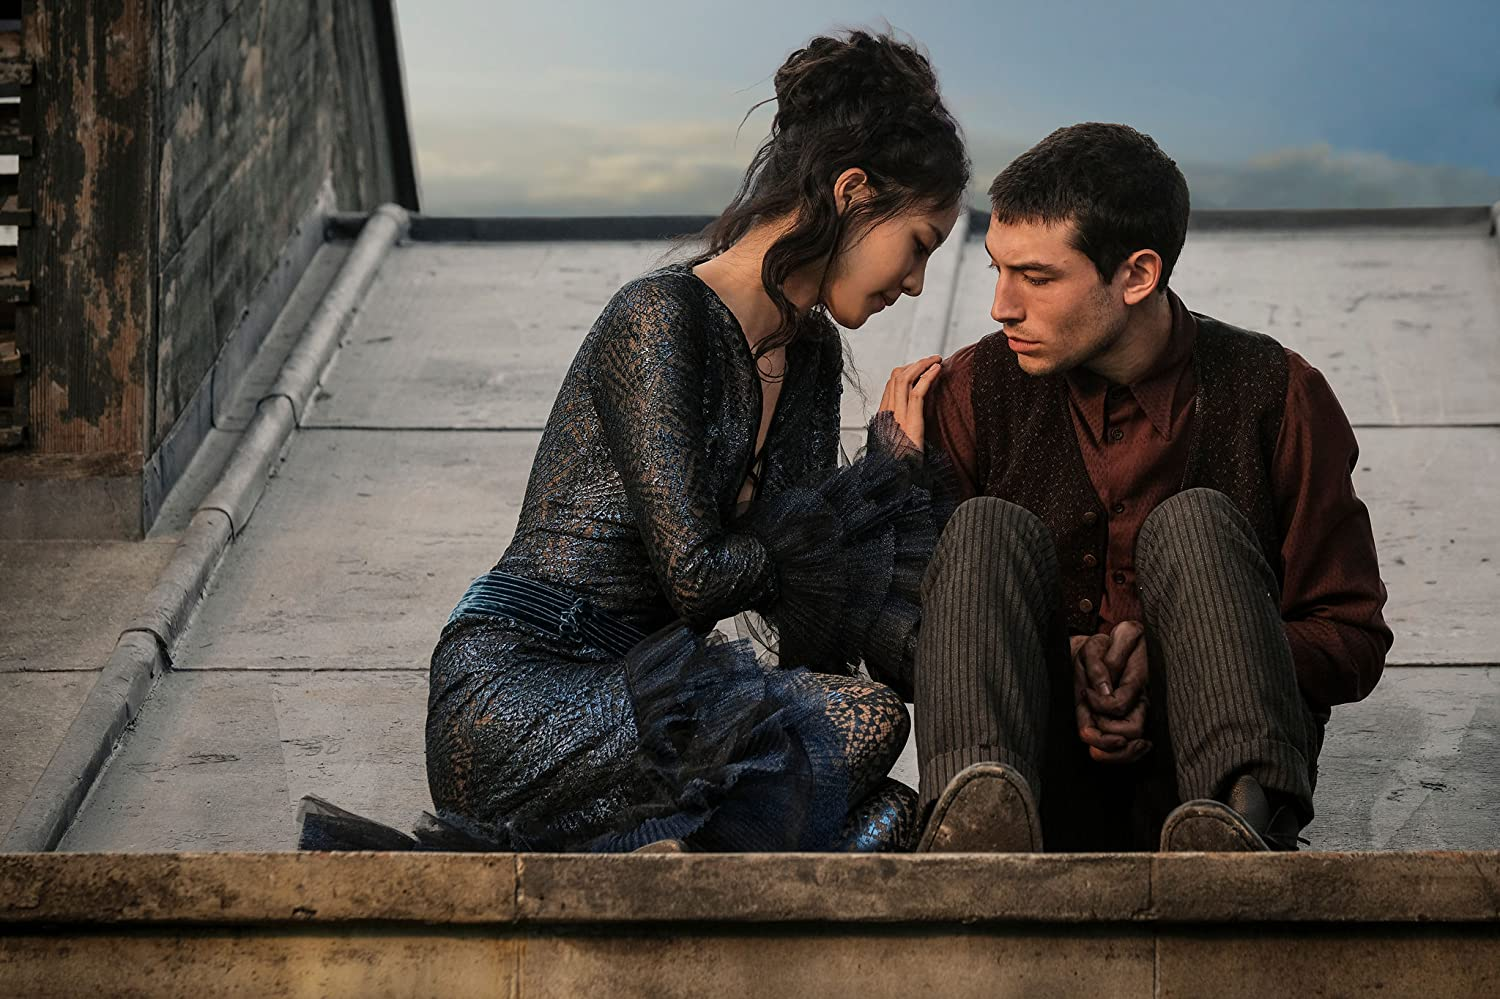 Claudia Kim and Ezra Miller in Fantastic Beasts: The Crimes of Grindelwald (2018)